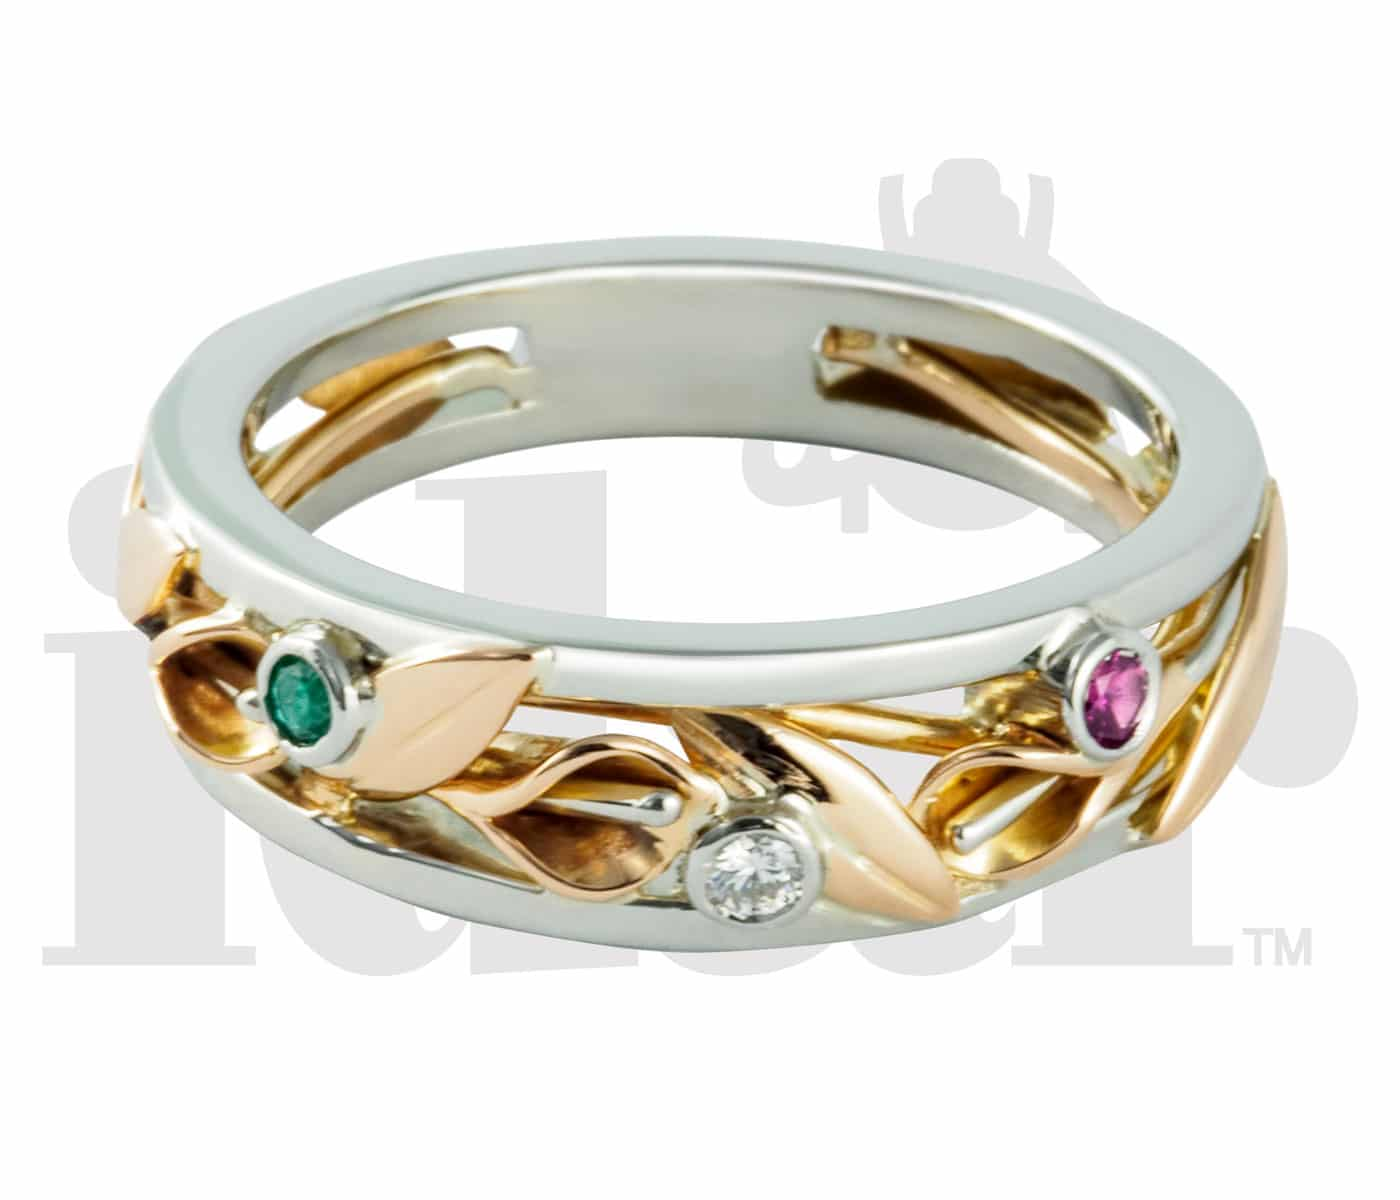 Idar Jewellers, diamonds, gold handcrafted jewellery Calla Lily Collection, Victoria, BC, Vancouver, Calgary, Edmonton, Ottawa, Toronto, Montreal, Canada